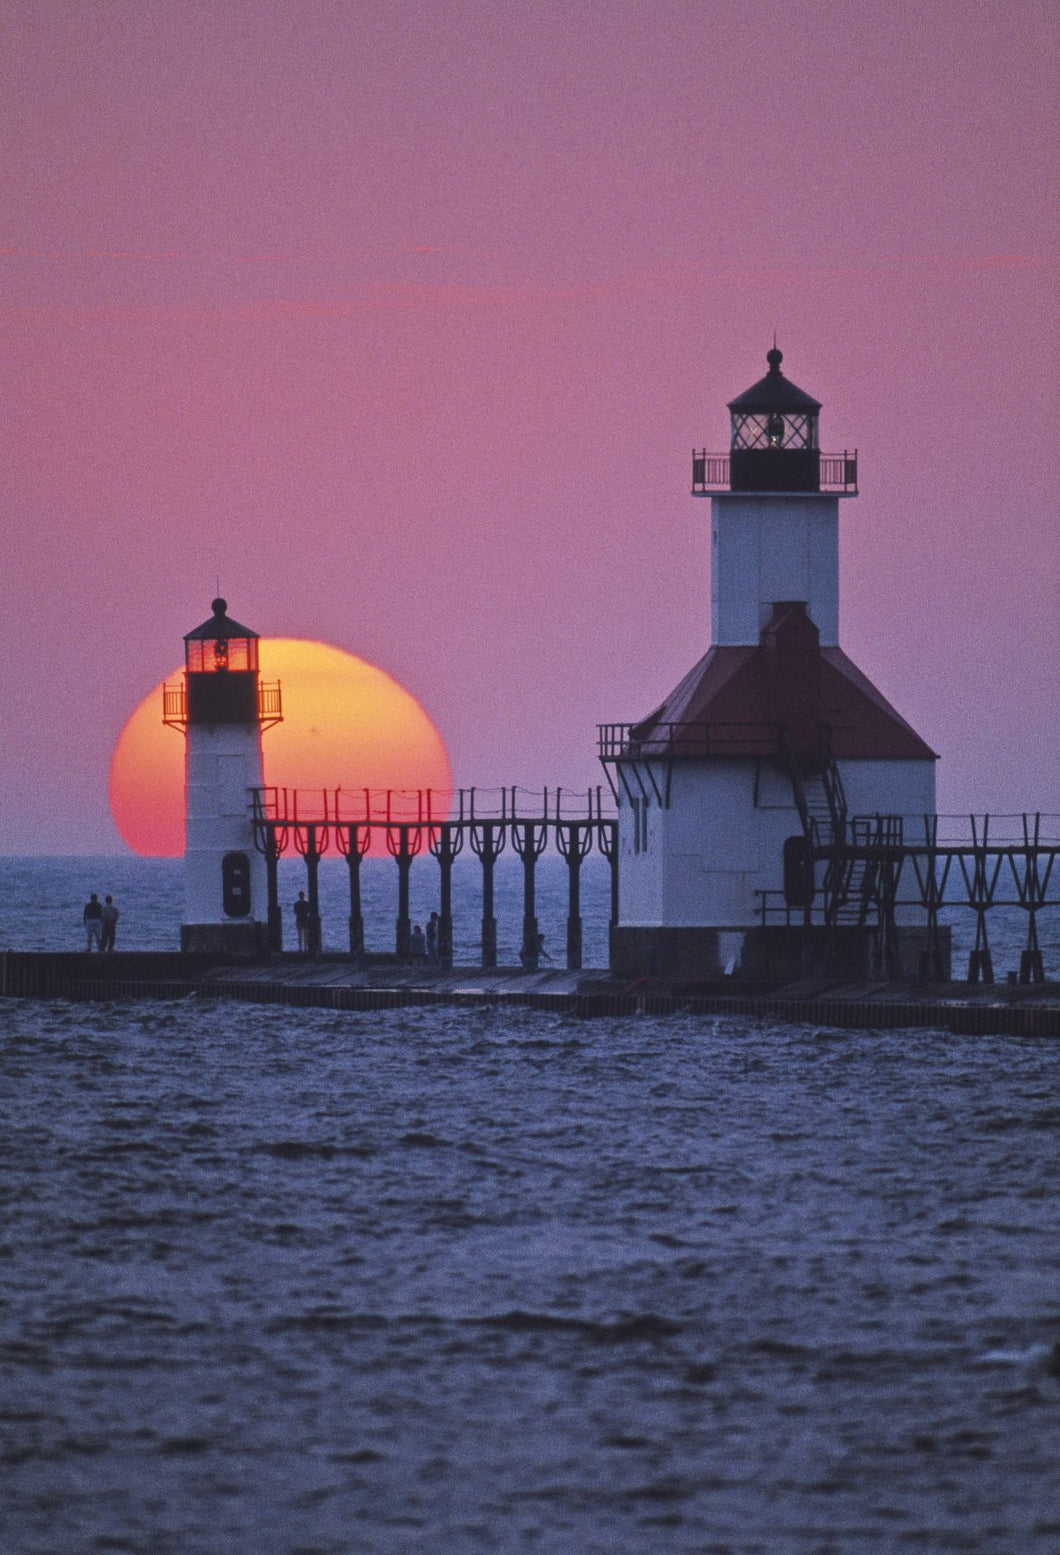 Lighthouse at sunset, St. Joseph, Michigan, USA